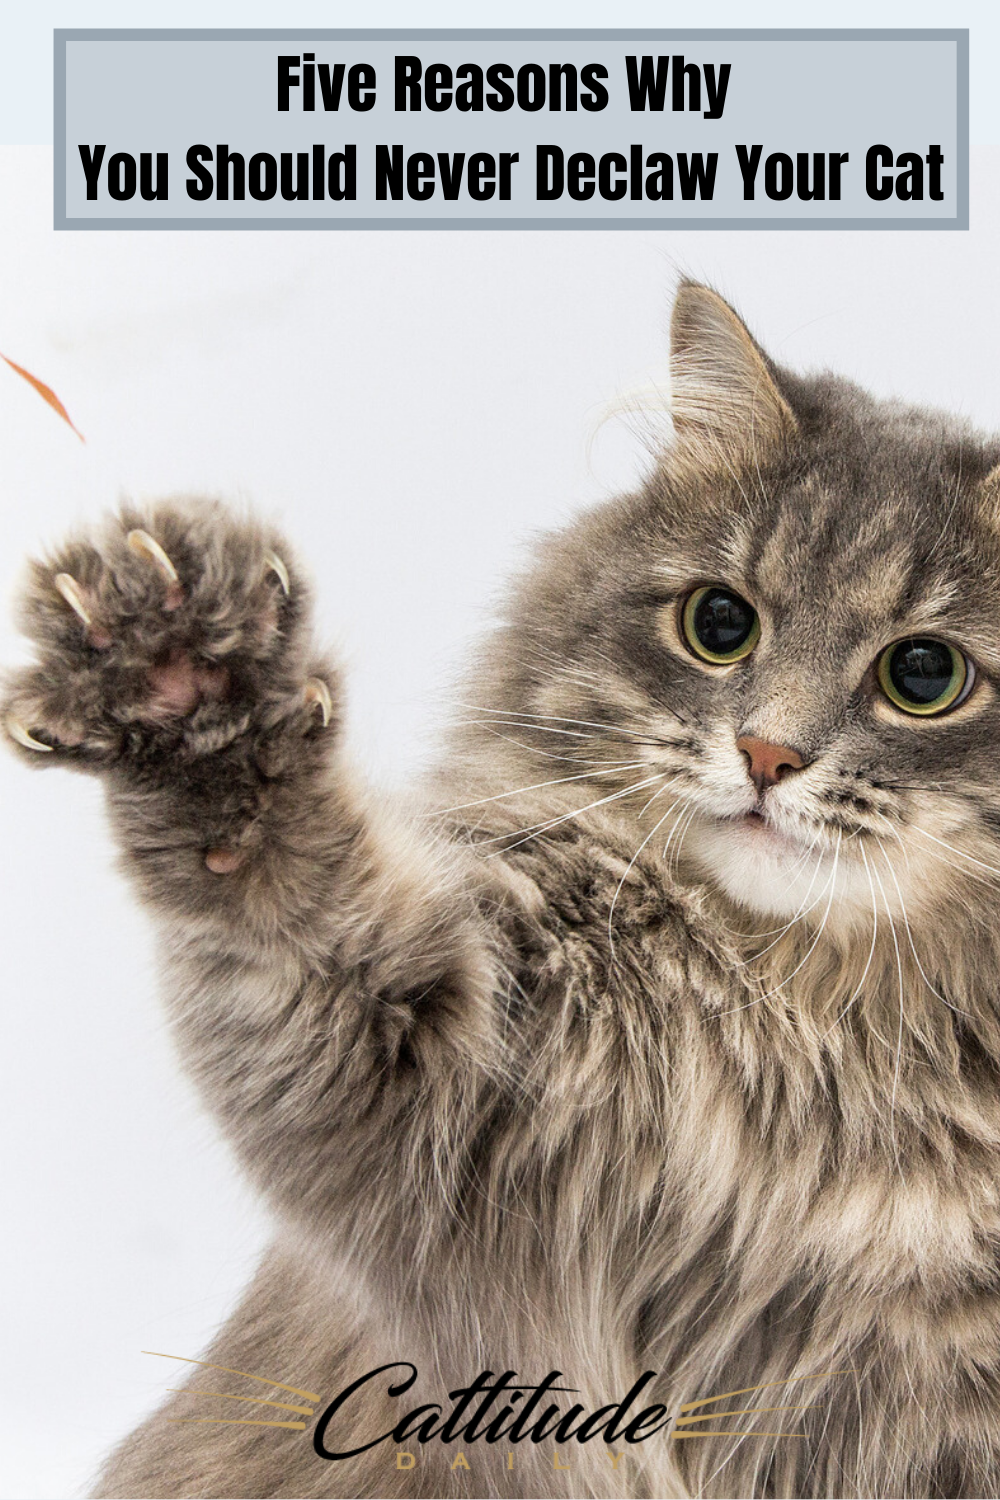 Your Cat S Claws Serve Many Purposes And When Their Claws Are Taken From Them They Can Suffer In Many Ways Cattitudedaily Cats